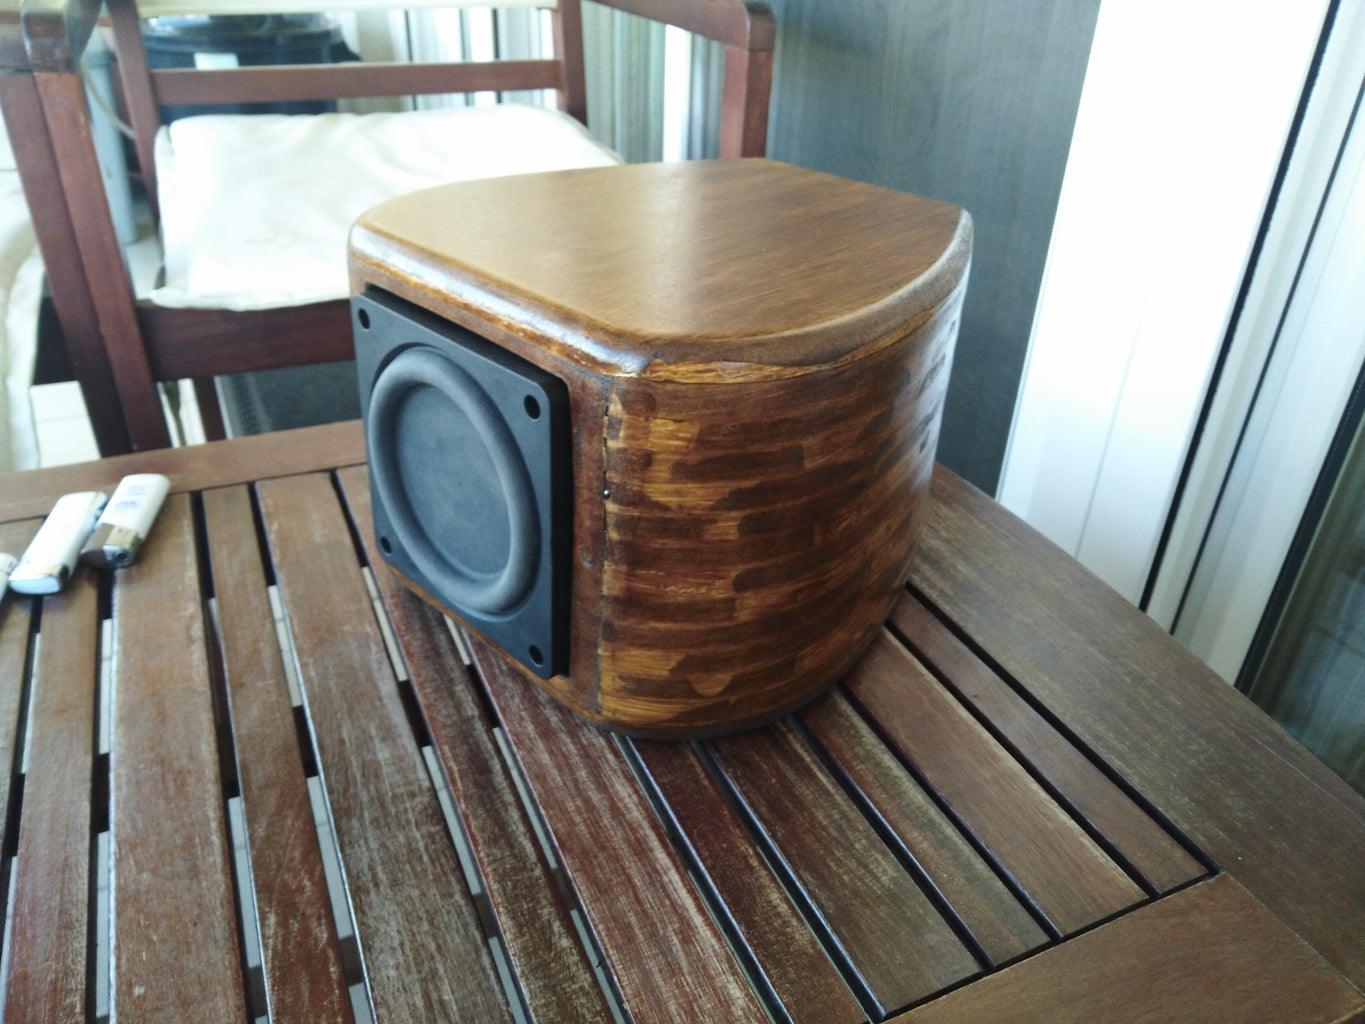 Place the Speakers